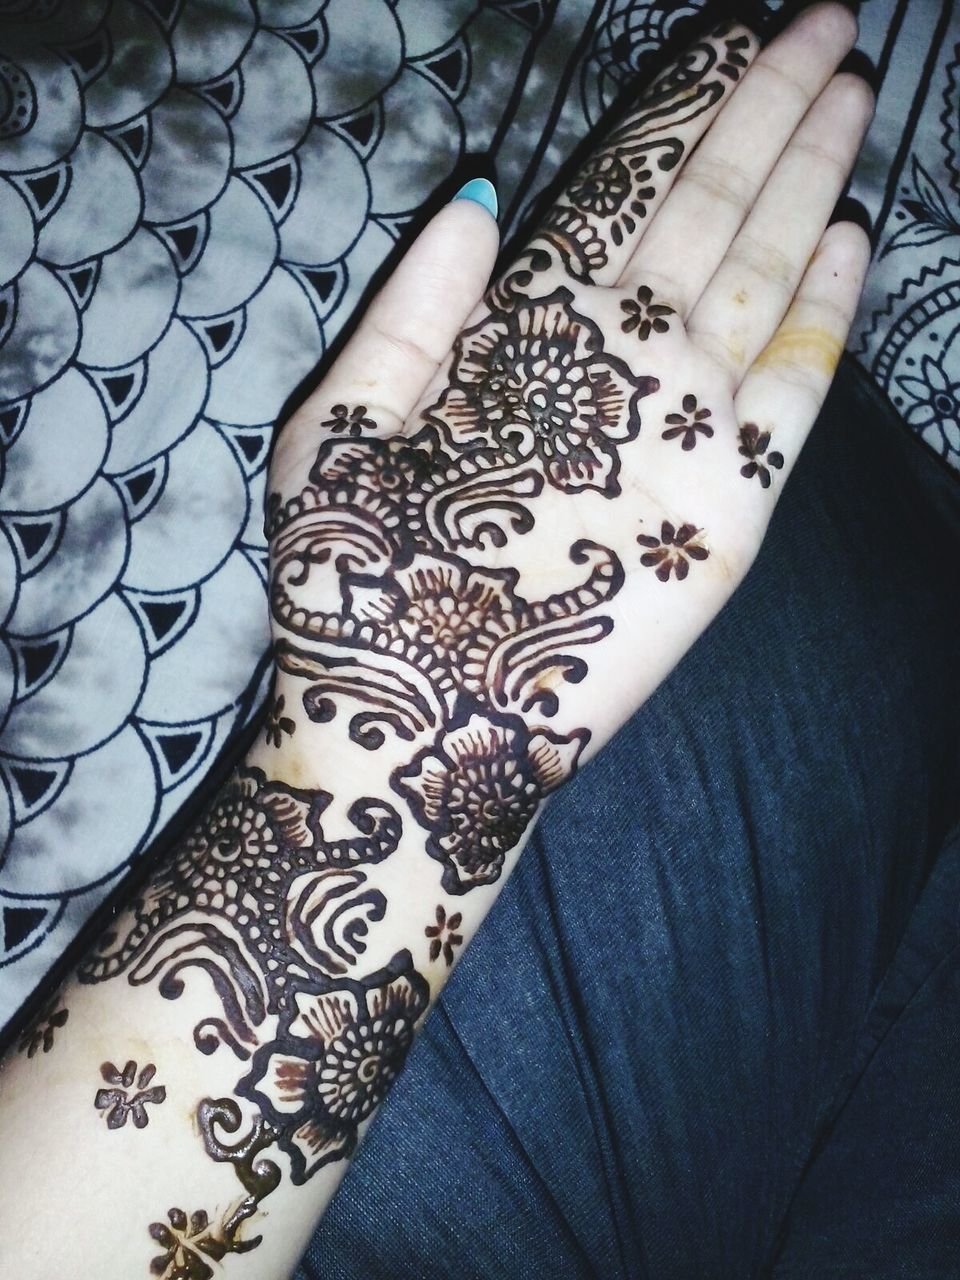 design, real people, human body part, one person, tattoo, human hand, indoors, high angle view, pattern, human leg, fashion, women, lifestyles, low section, close-up, day, adult, people